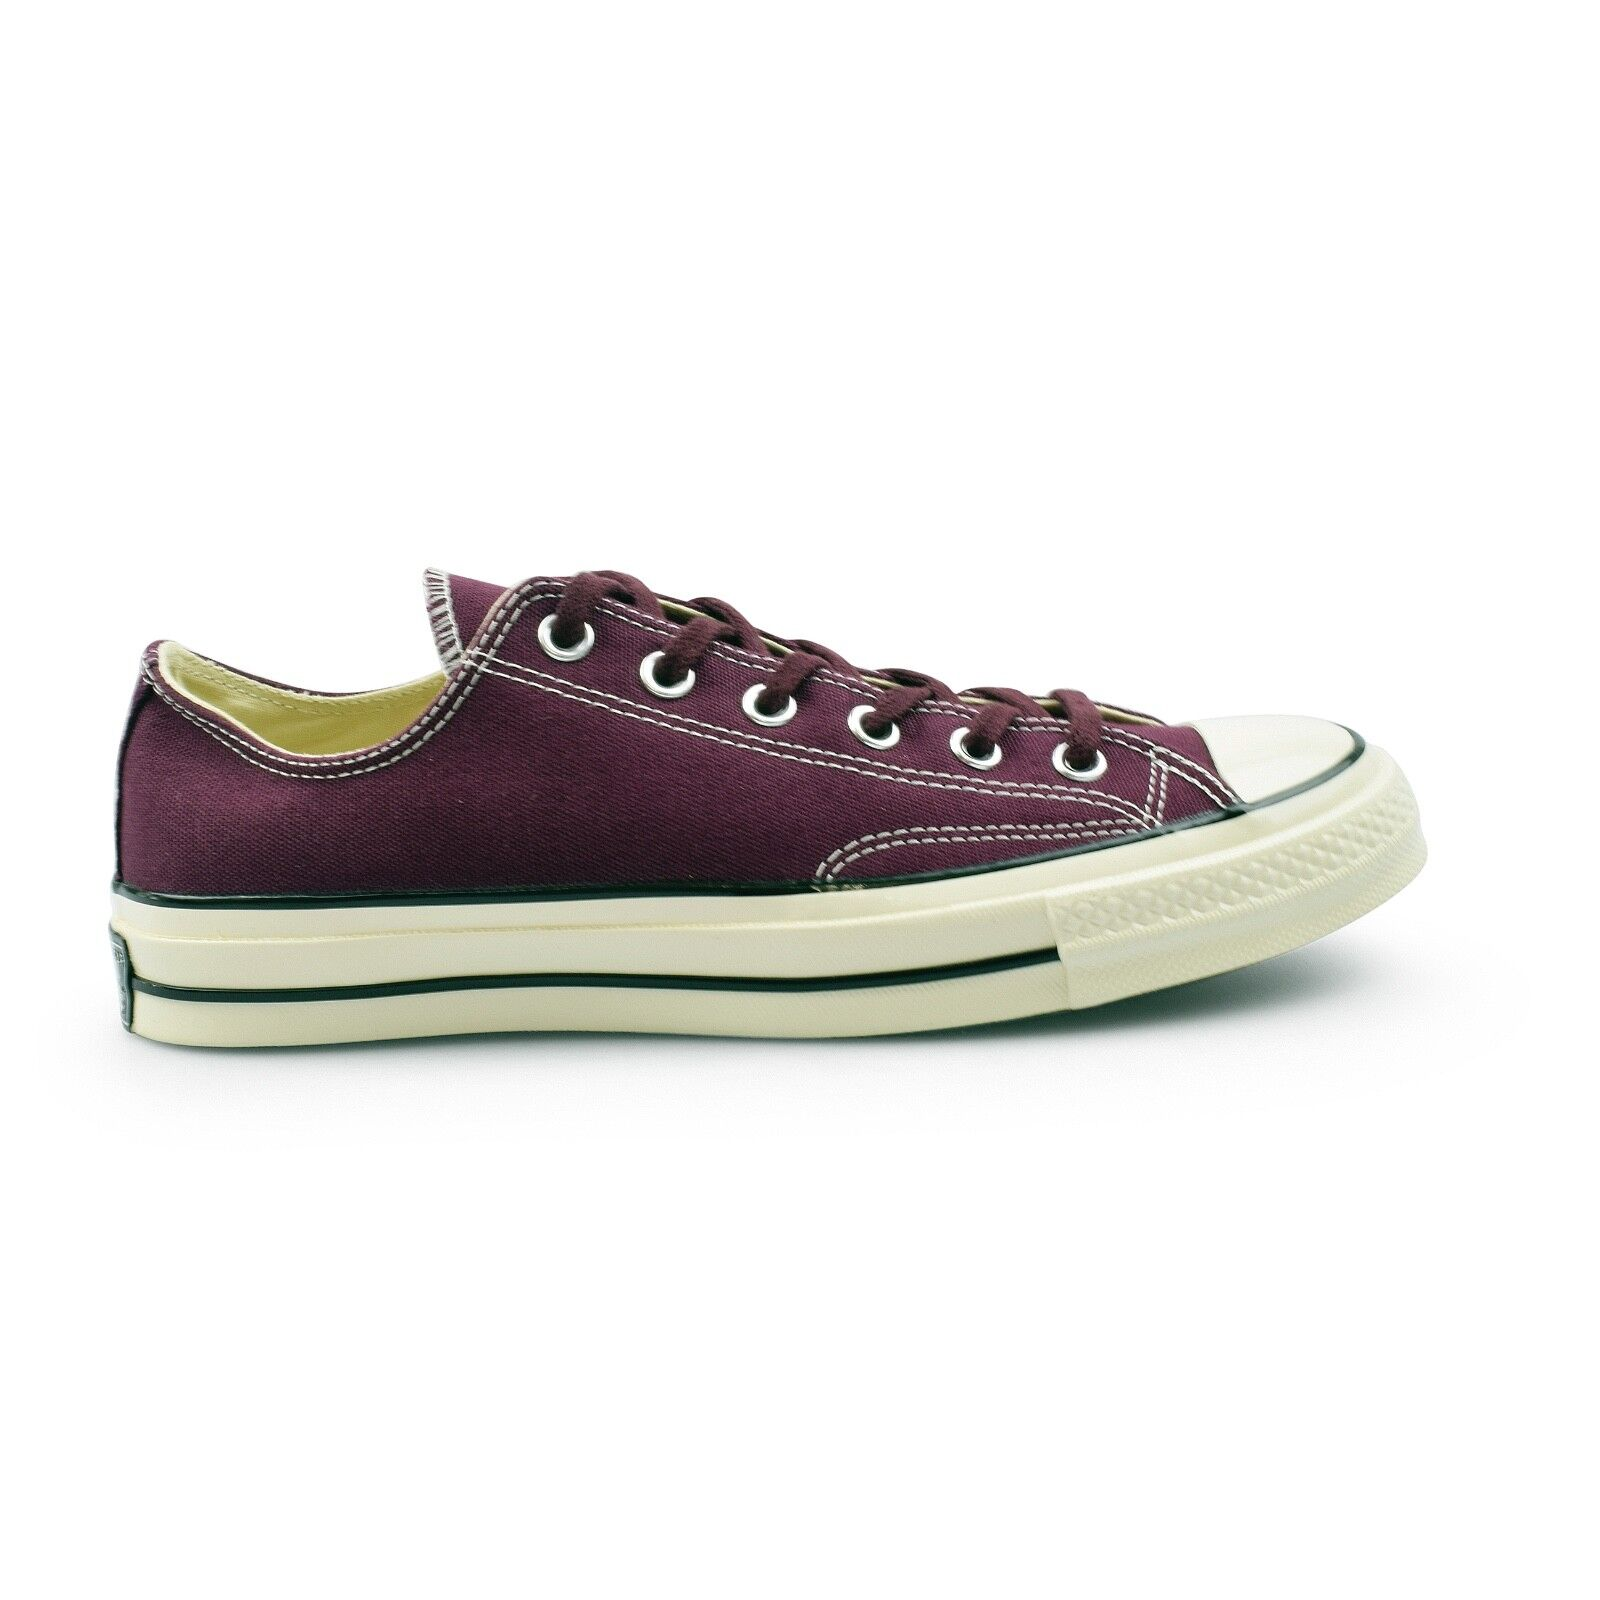 Converse Chuck Taylor All Star 70's Ox Dark Sangria Canvas Mens Trainers